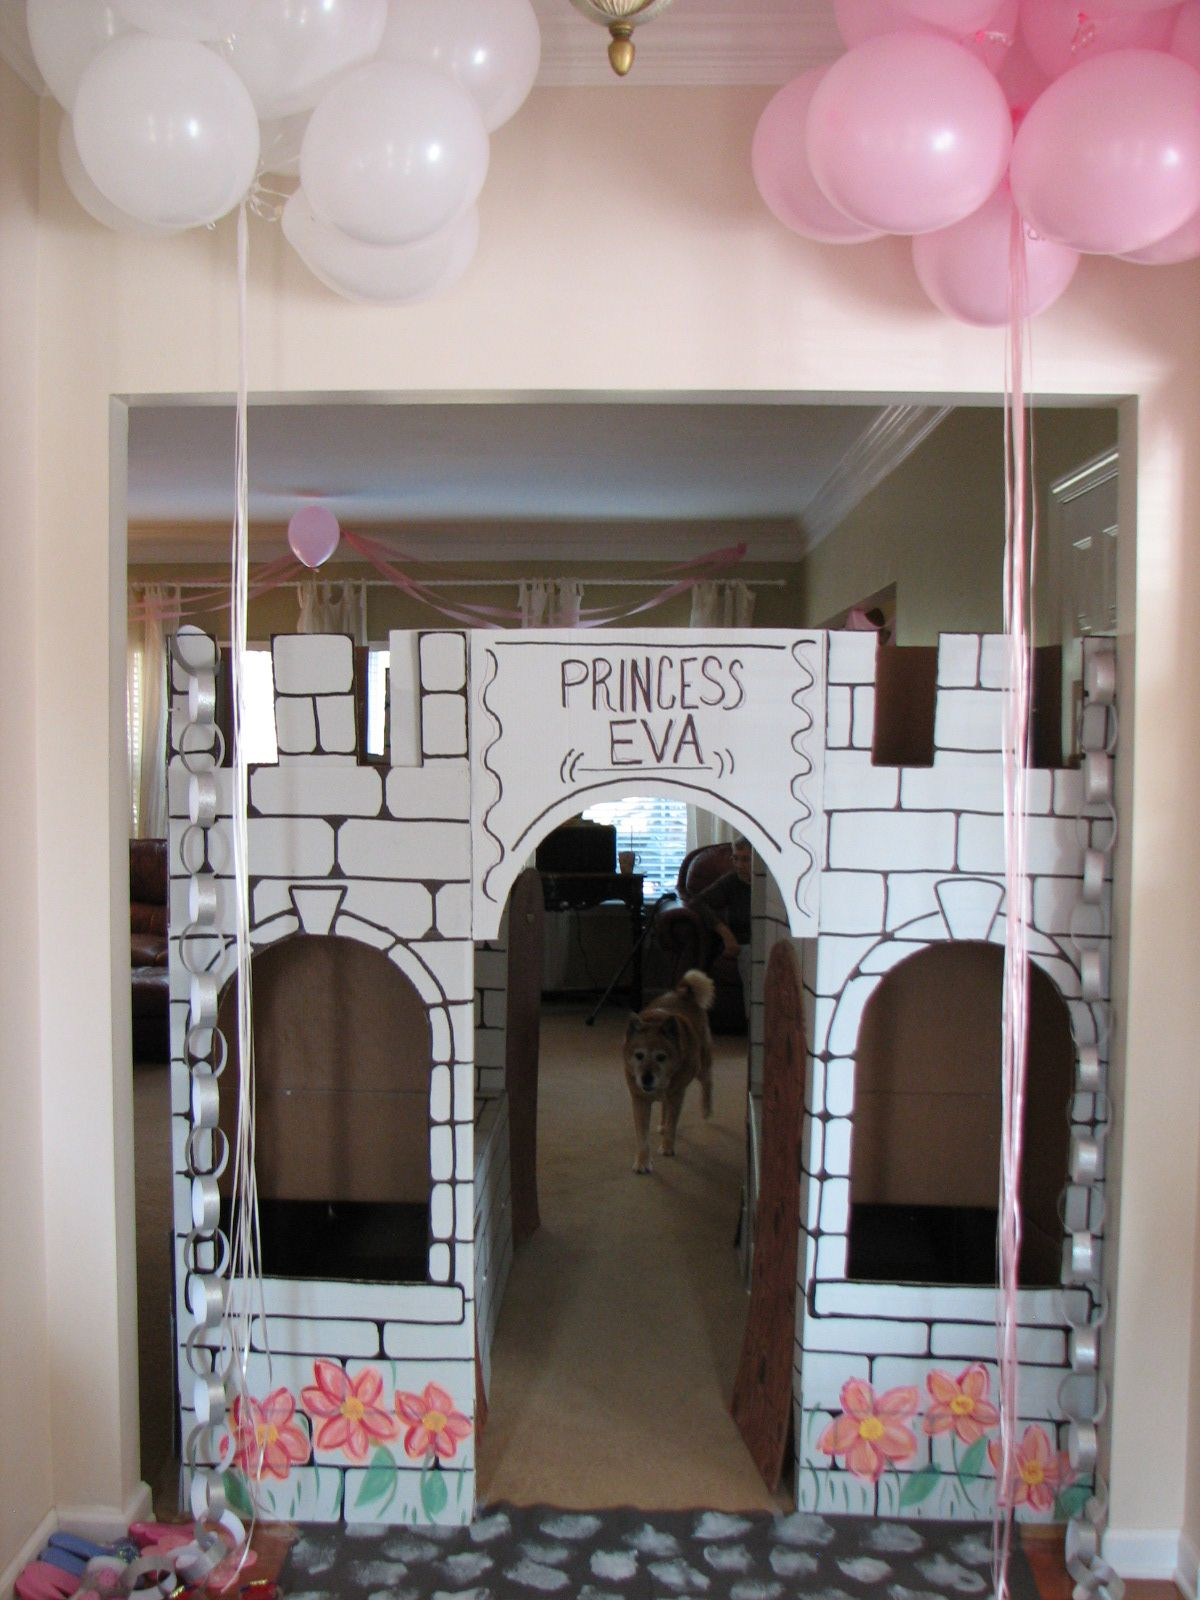 Evas cardboard castle was a huge hit with all the royal